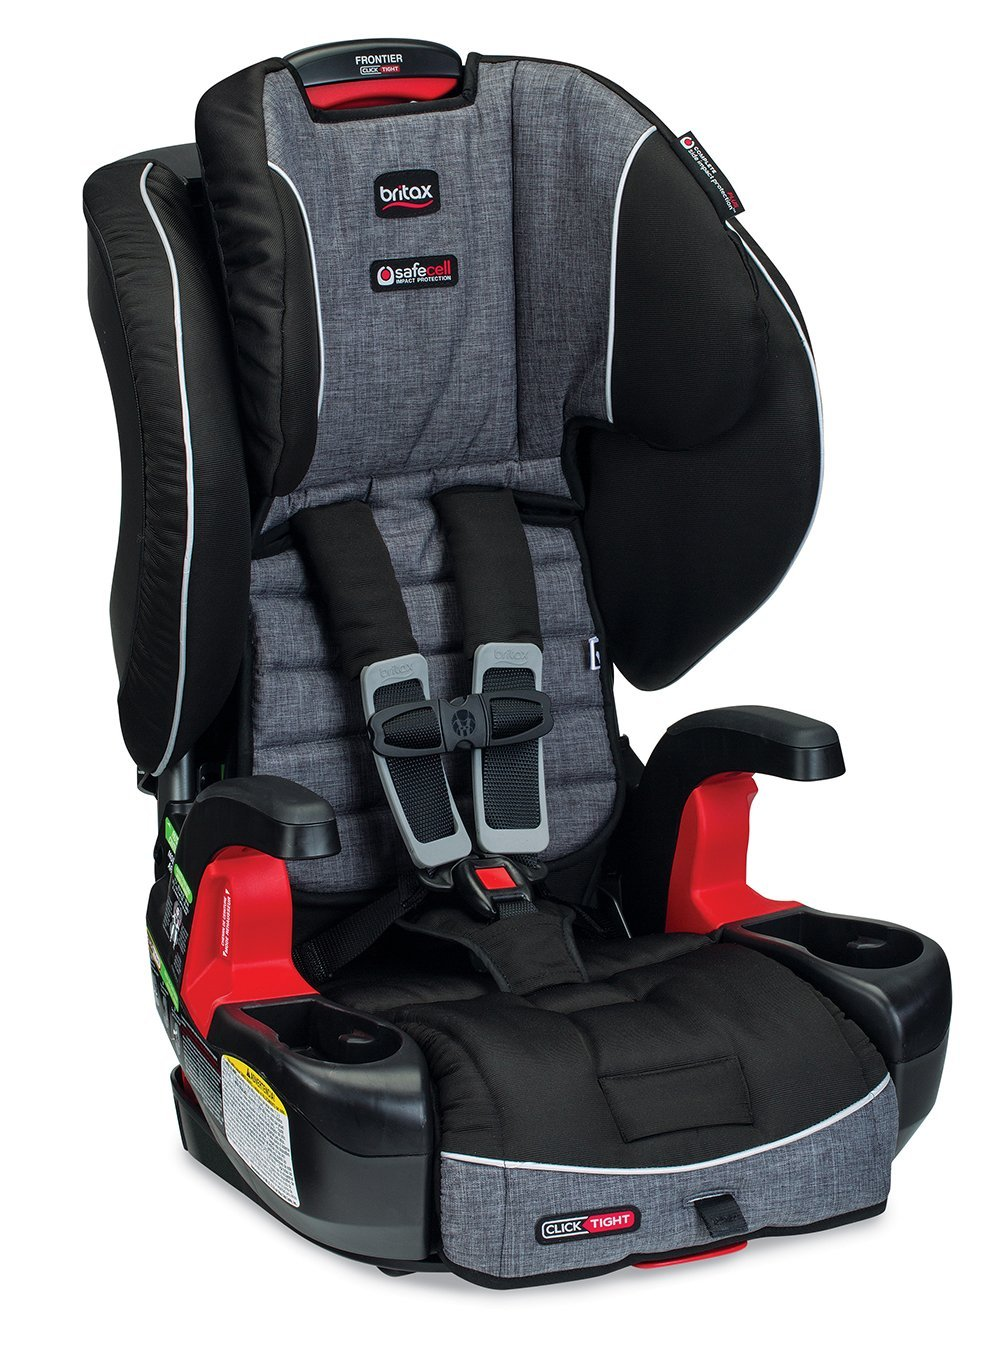 britax g1.1 frontier clicktight booster seat, high back booster seat, best high back booster seat, child safety seat, booster seat for car, best booster seat for car